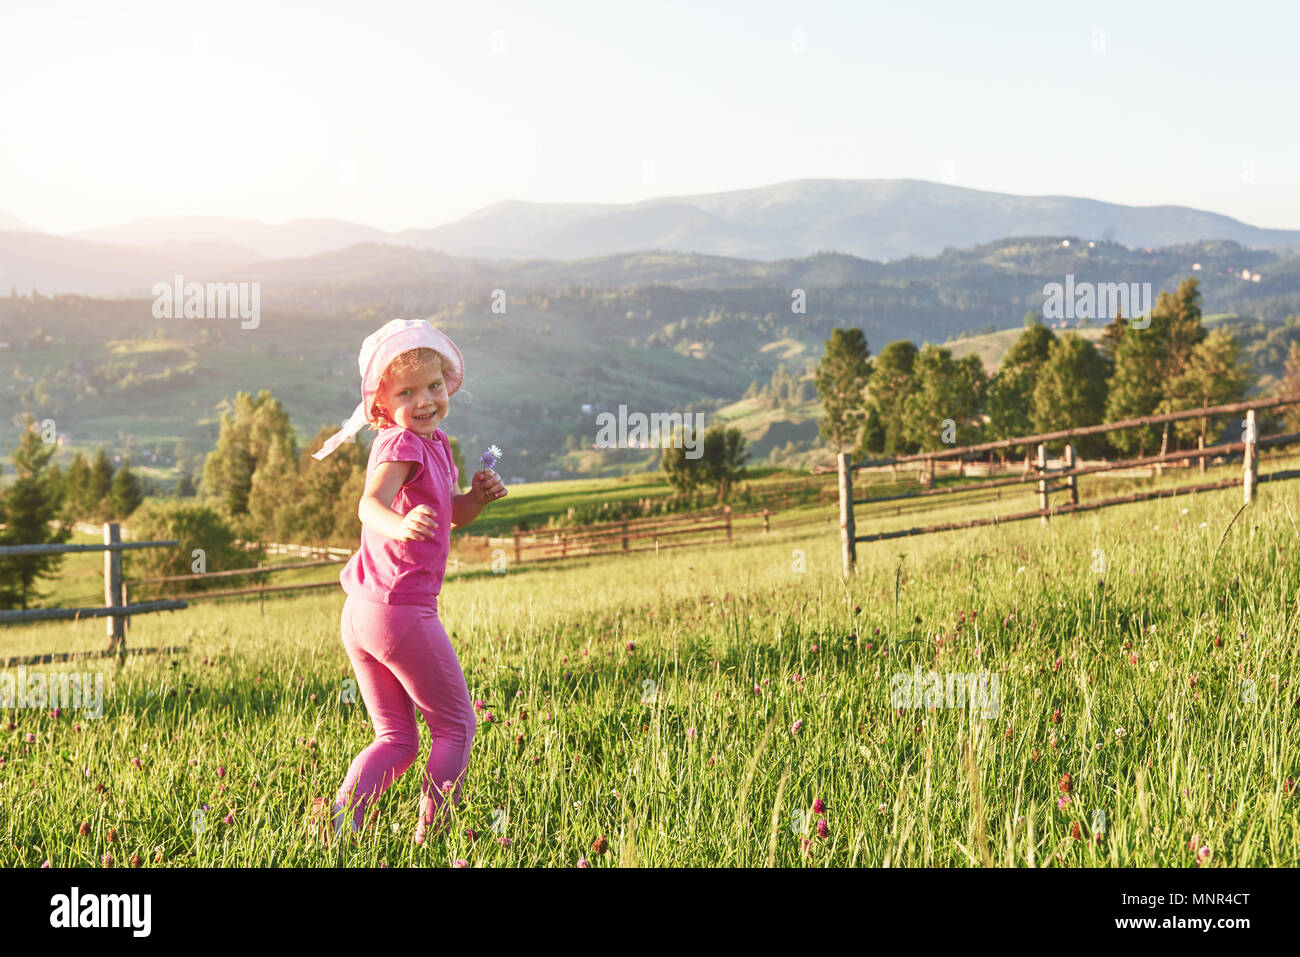 Cute happy little baby girl play outdoors in the early morning in the lawn and admiring mountains view. Copy space for your text - Stock Image